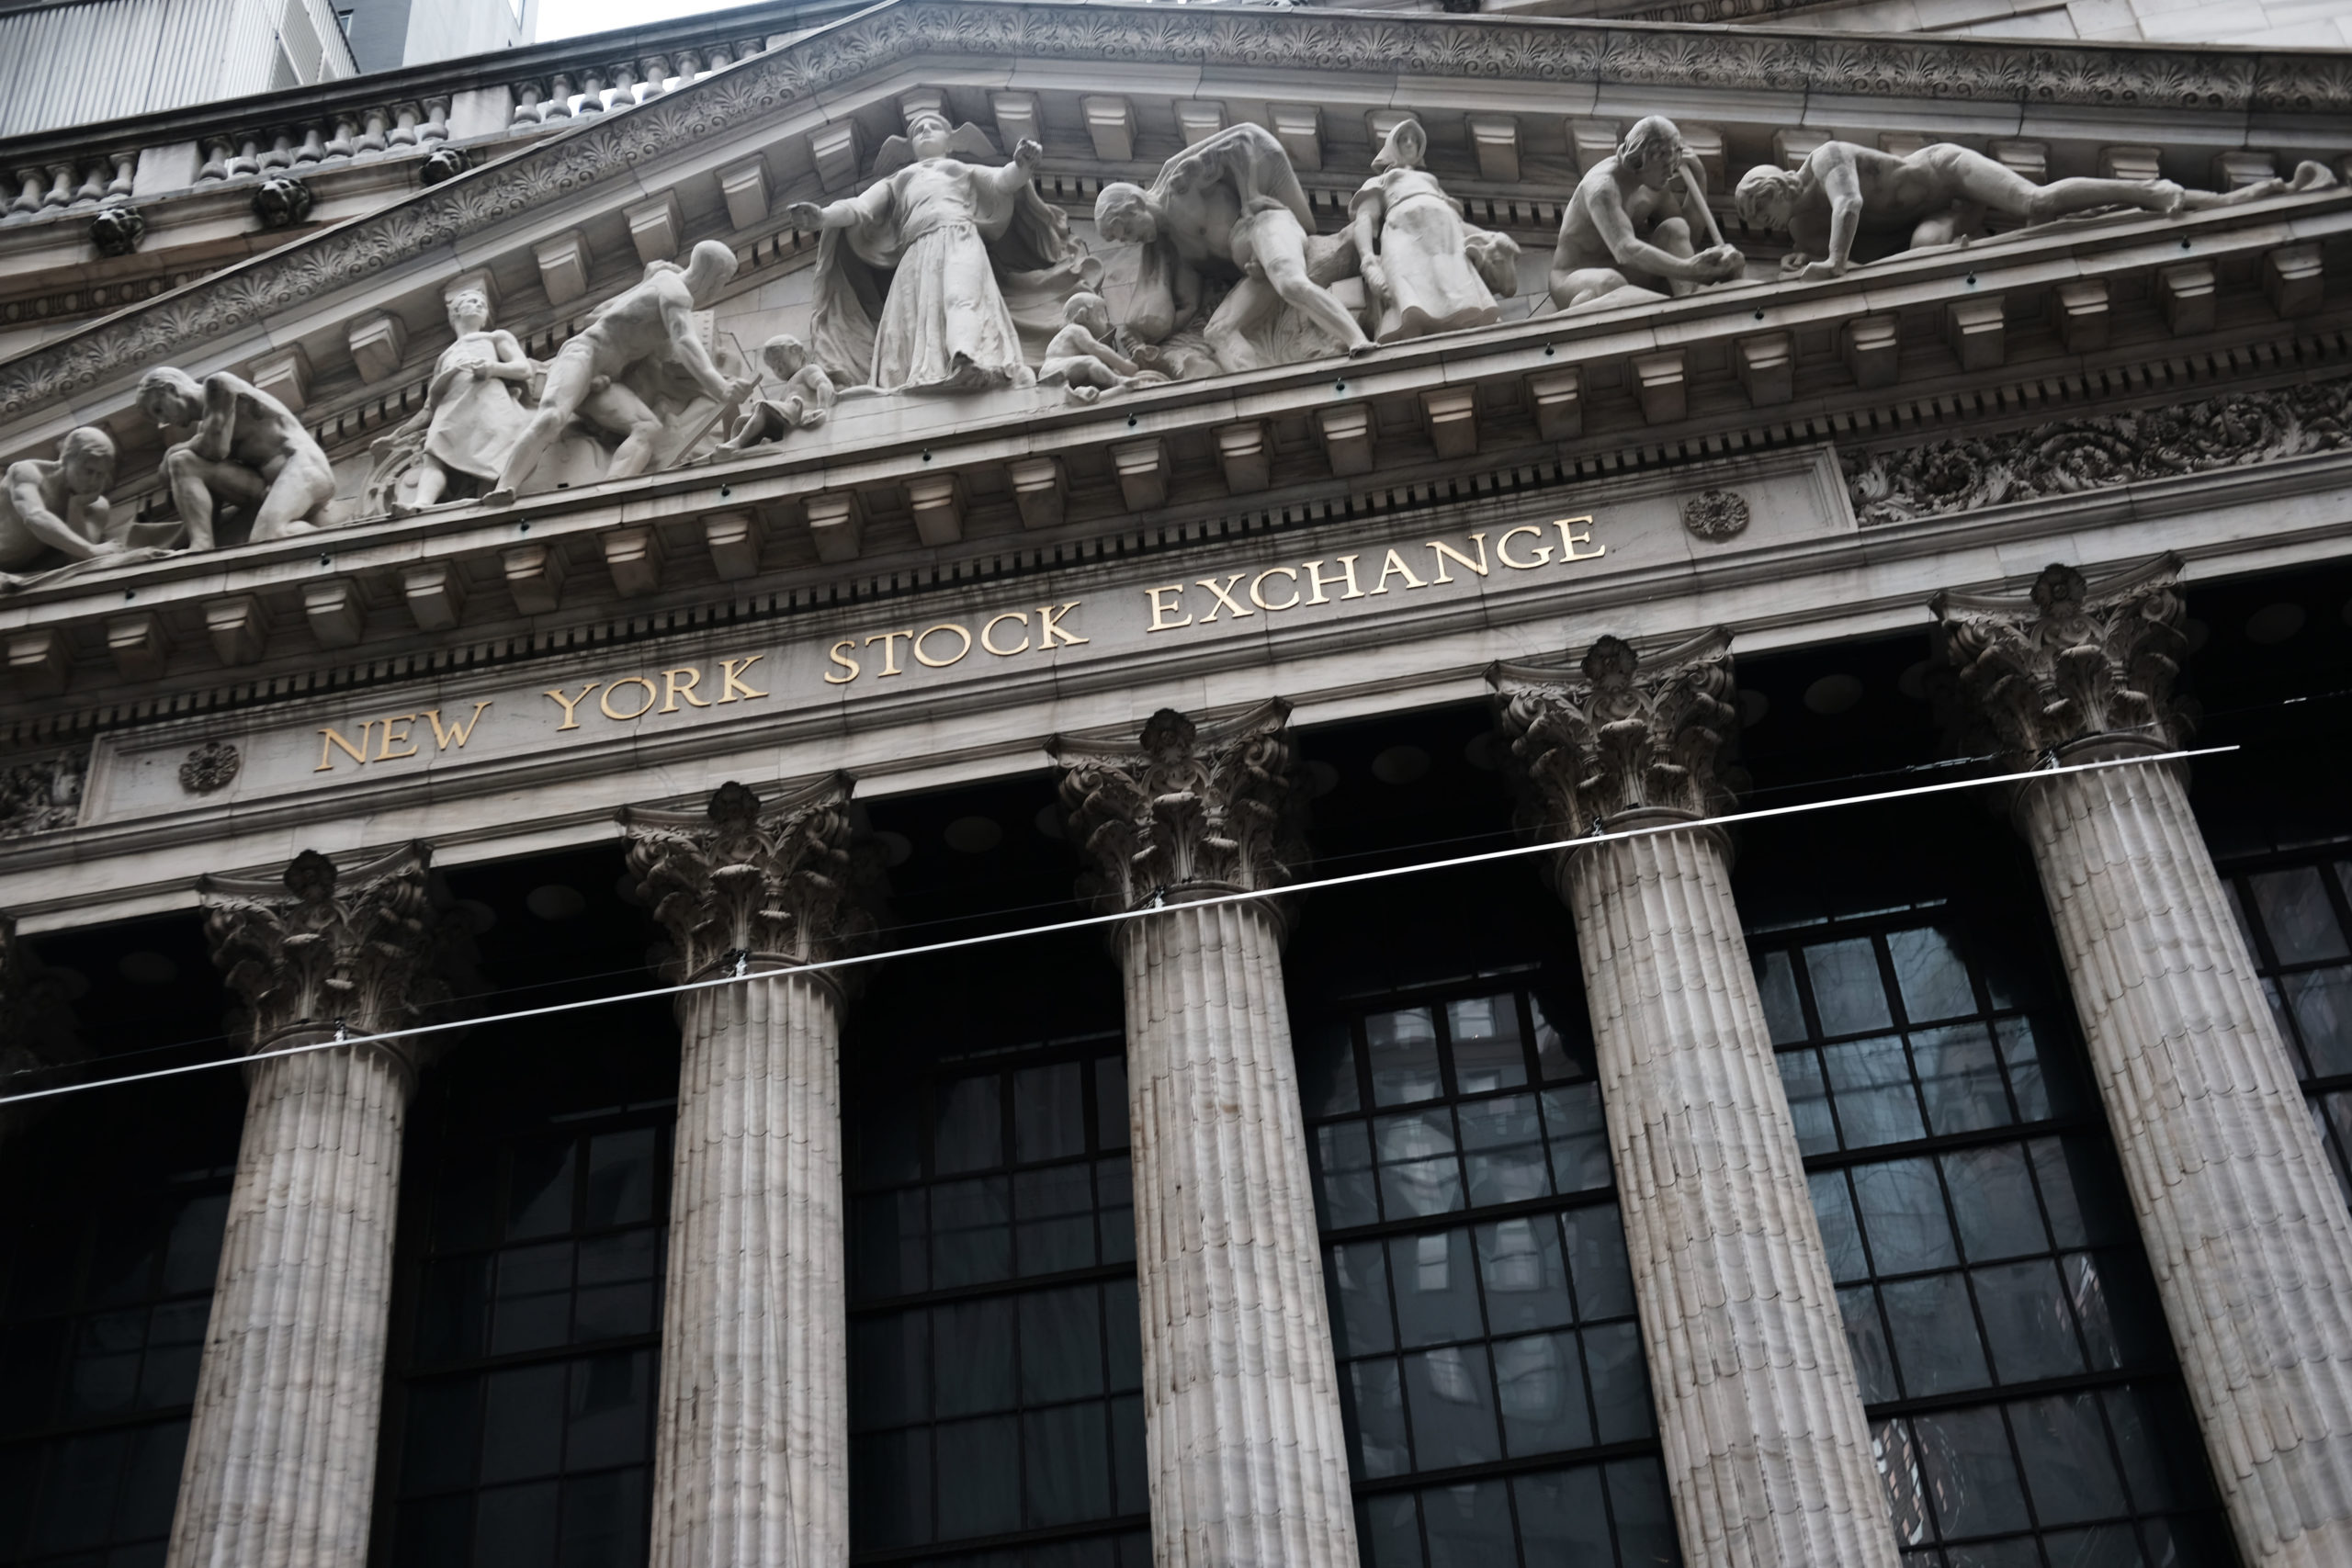 NEW YORK, NEW YORK - JANUARY 03: The New York Stock Exchange (NYSE) stands in lower Manhattan on January 03, 2019 in New York City. As a decline in Apple product sales in China continues to depress global markets, the Dow Jones Industrial Average fell over 200 points in morning trading. (Photo by Spencer Platt/Getty Images)